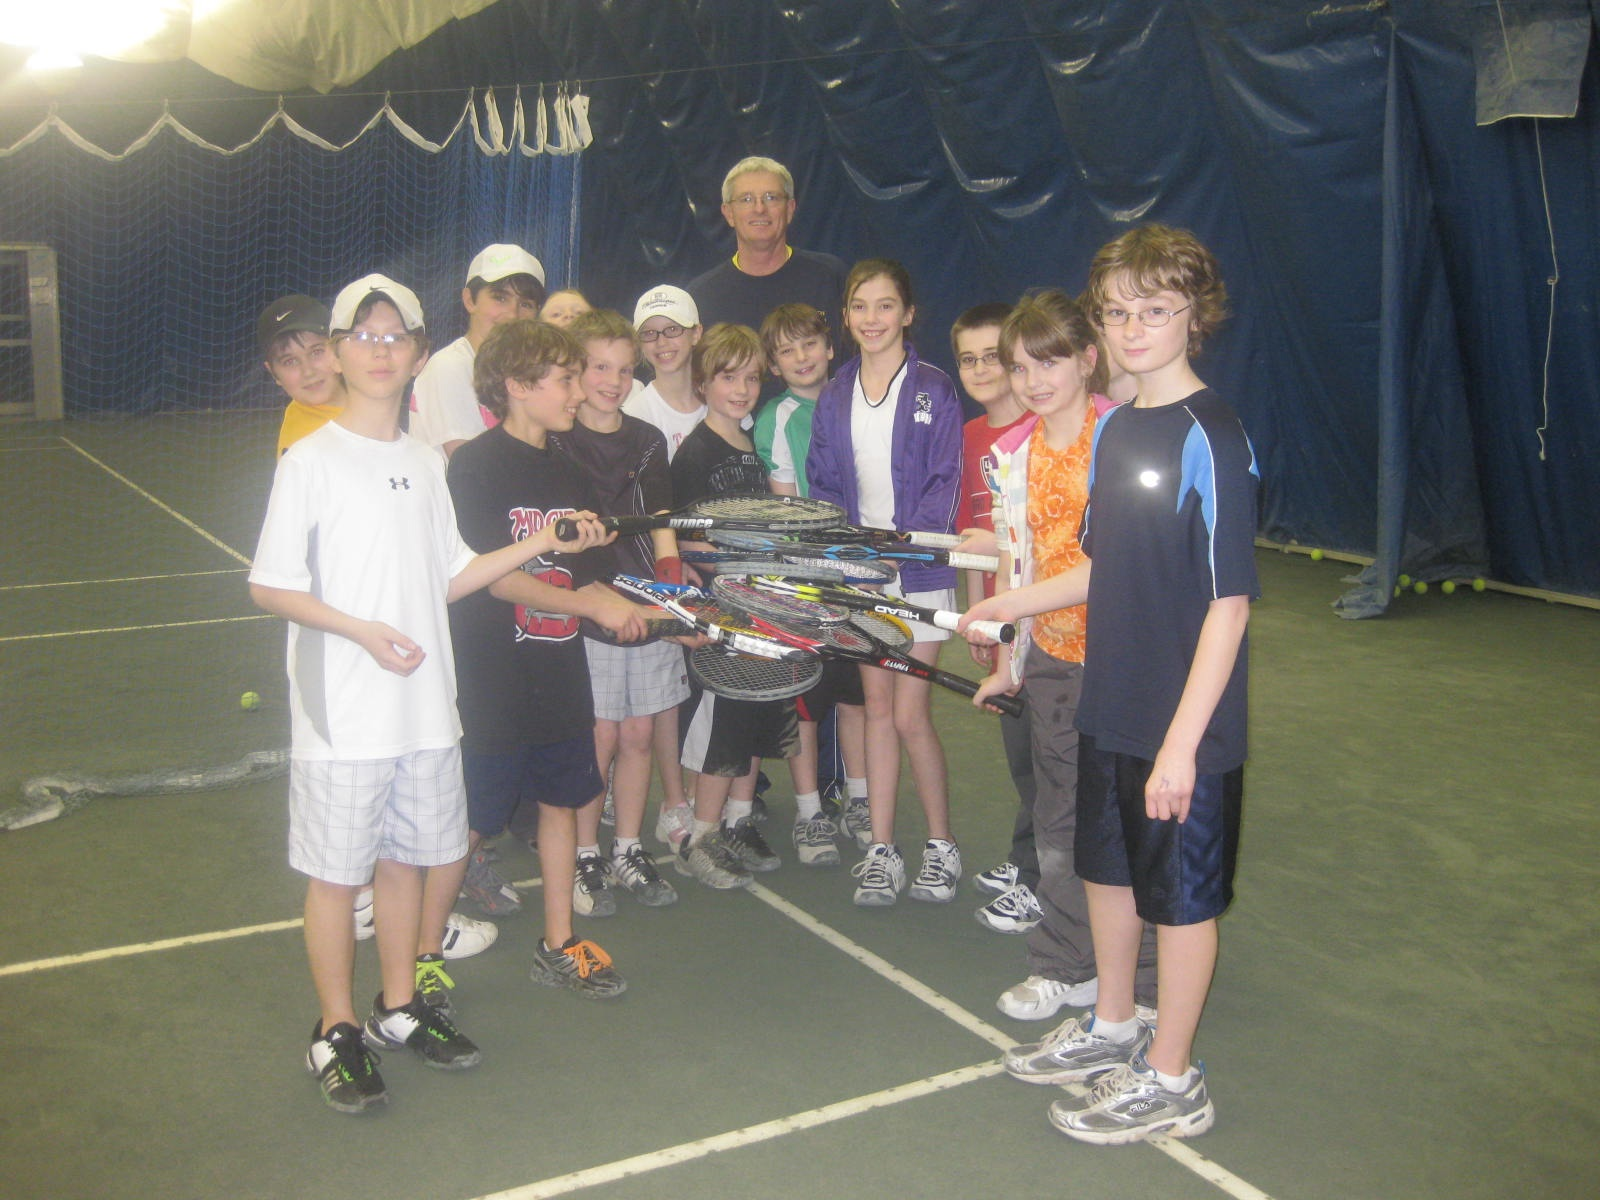 Tennis group photo.jpg